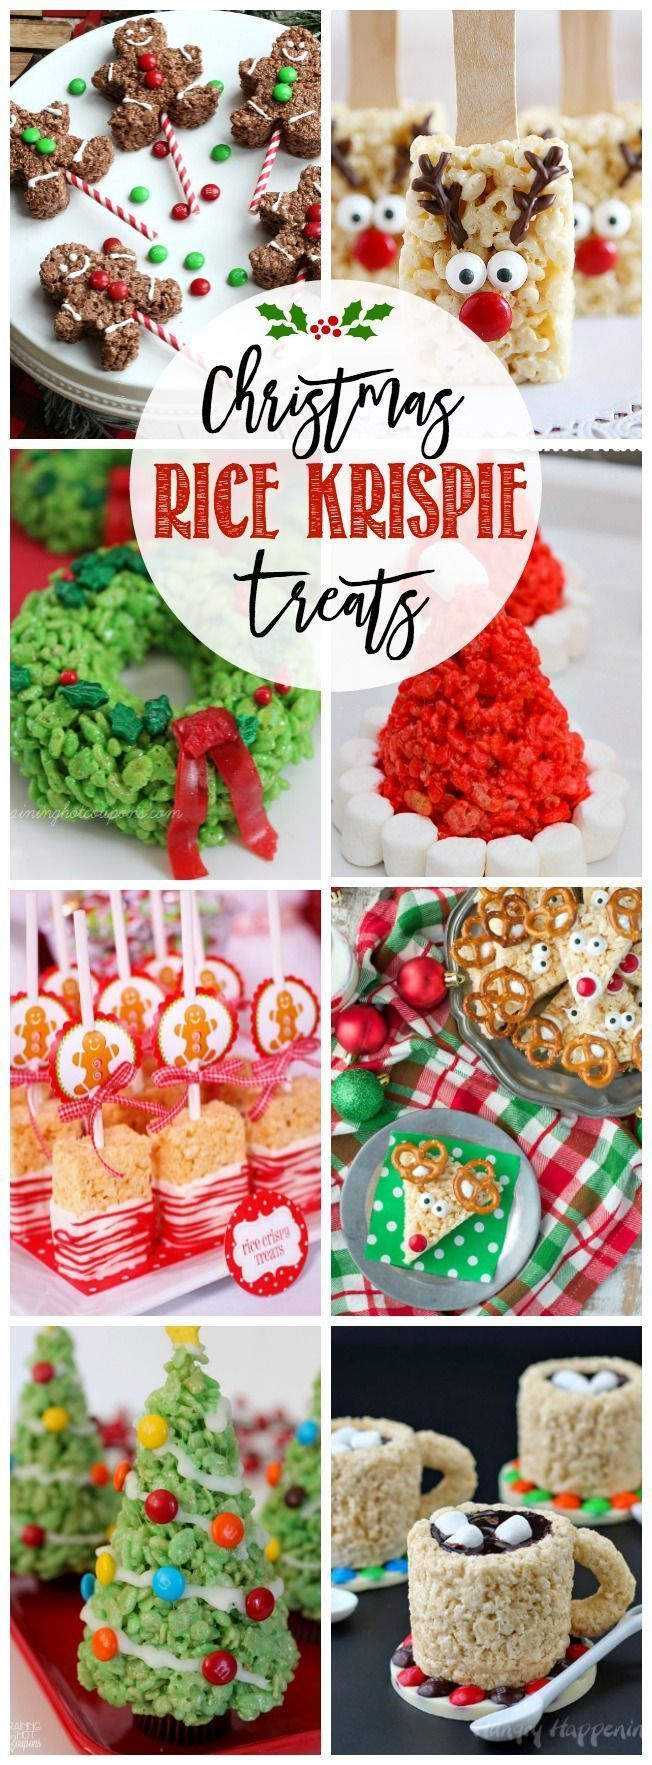 Quick, cute and easy Christmas Rice Krispie treats! Fun for class treats, Christmas parties or fun dessert ideas!